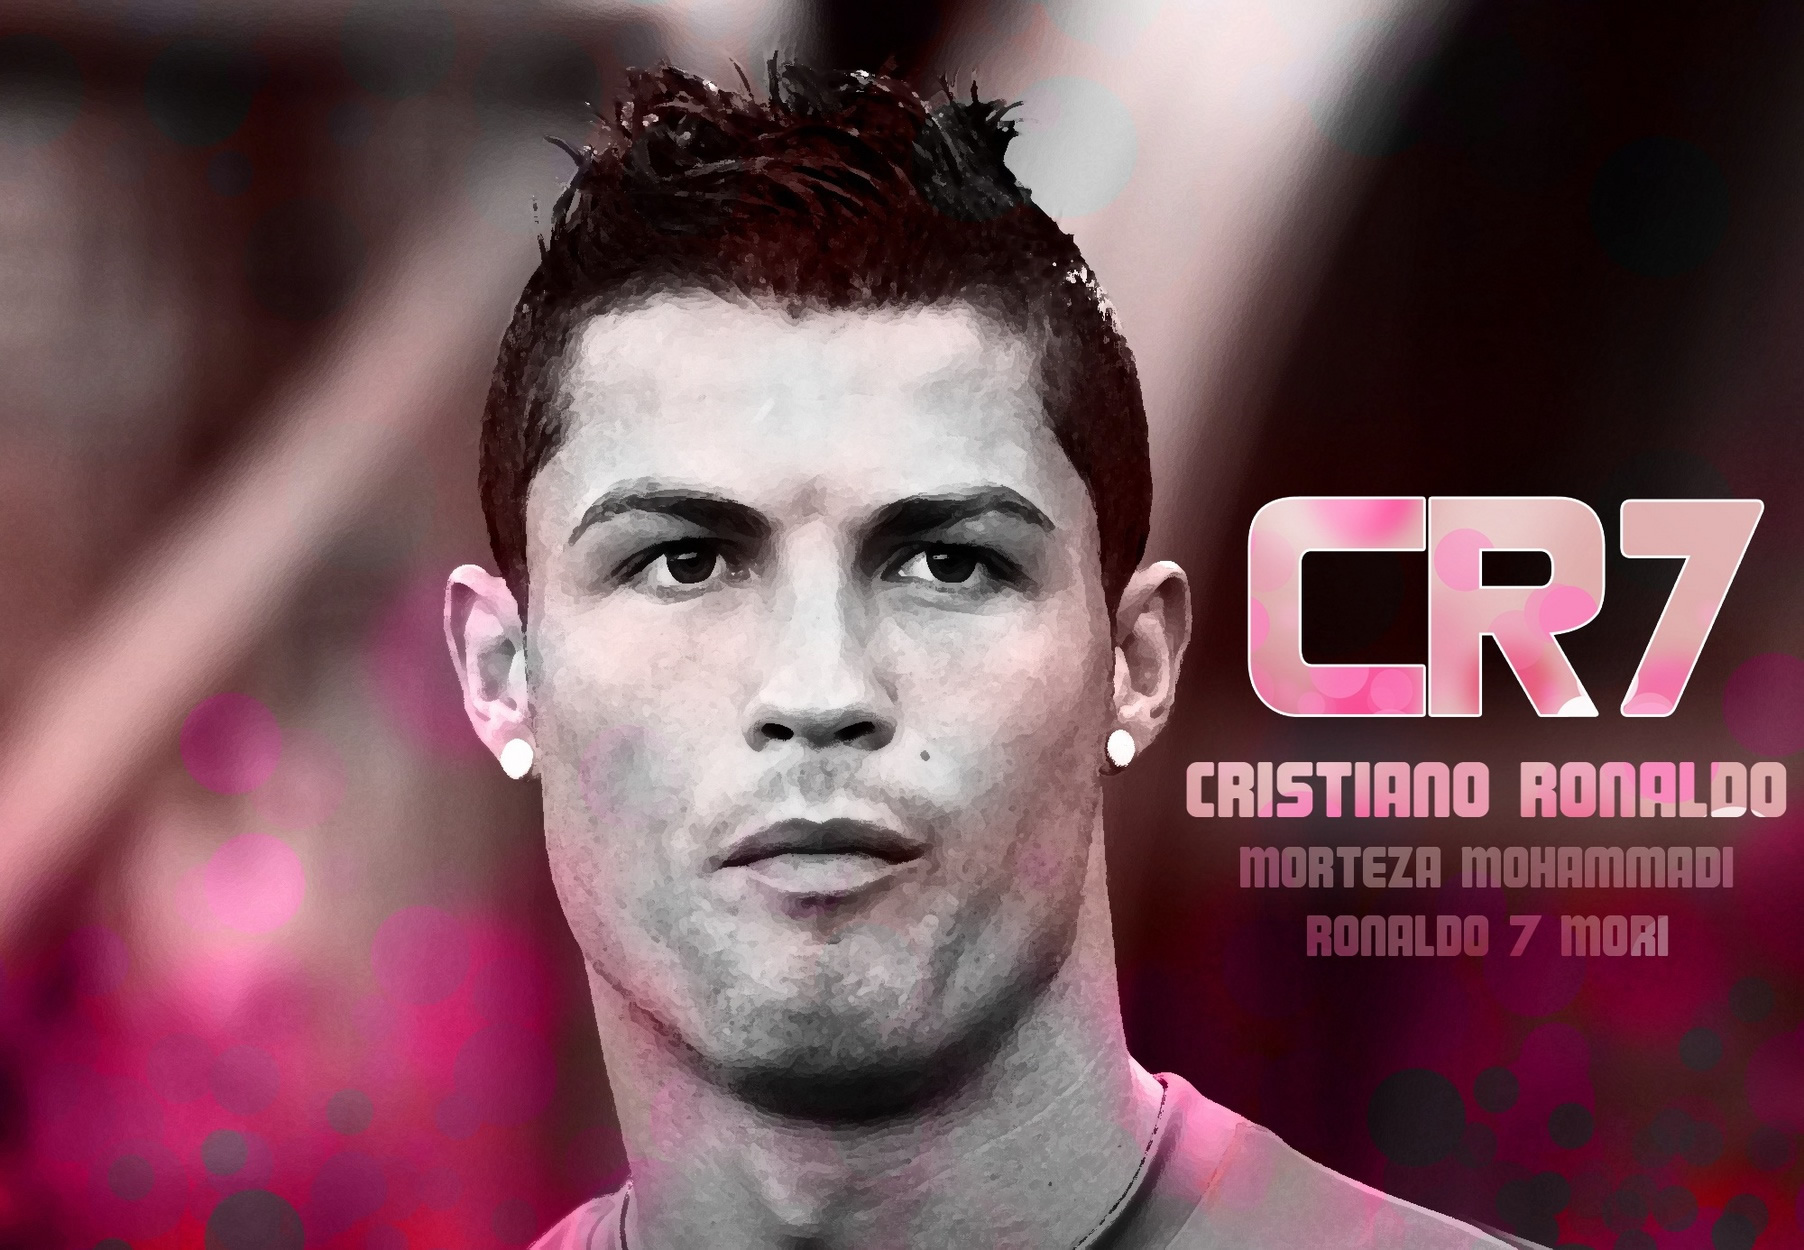 Cristiano Ronaldo head wallpaper